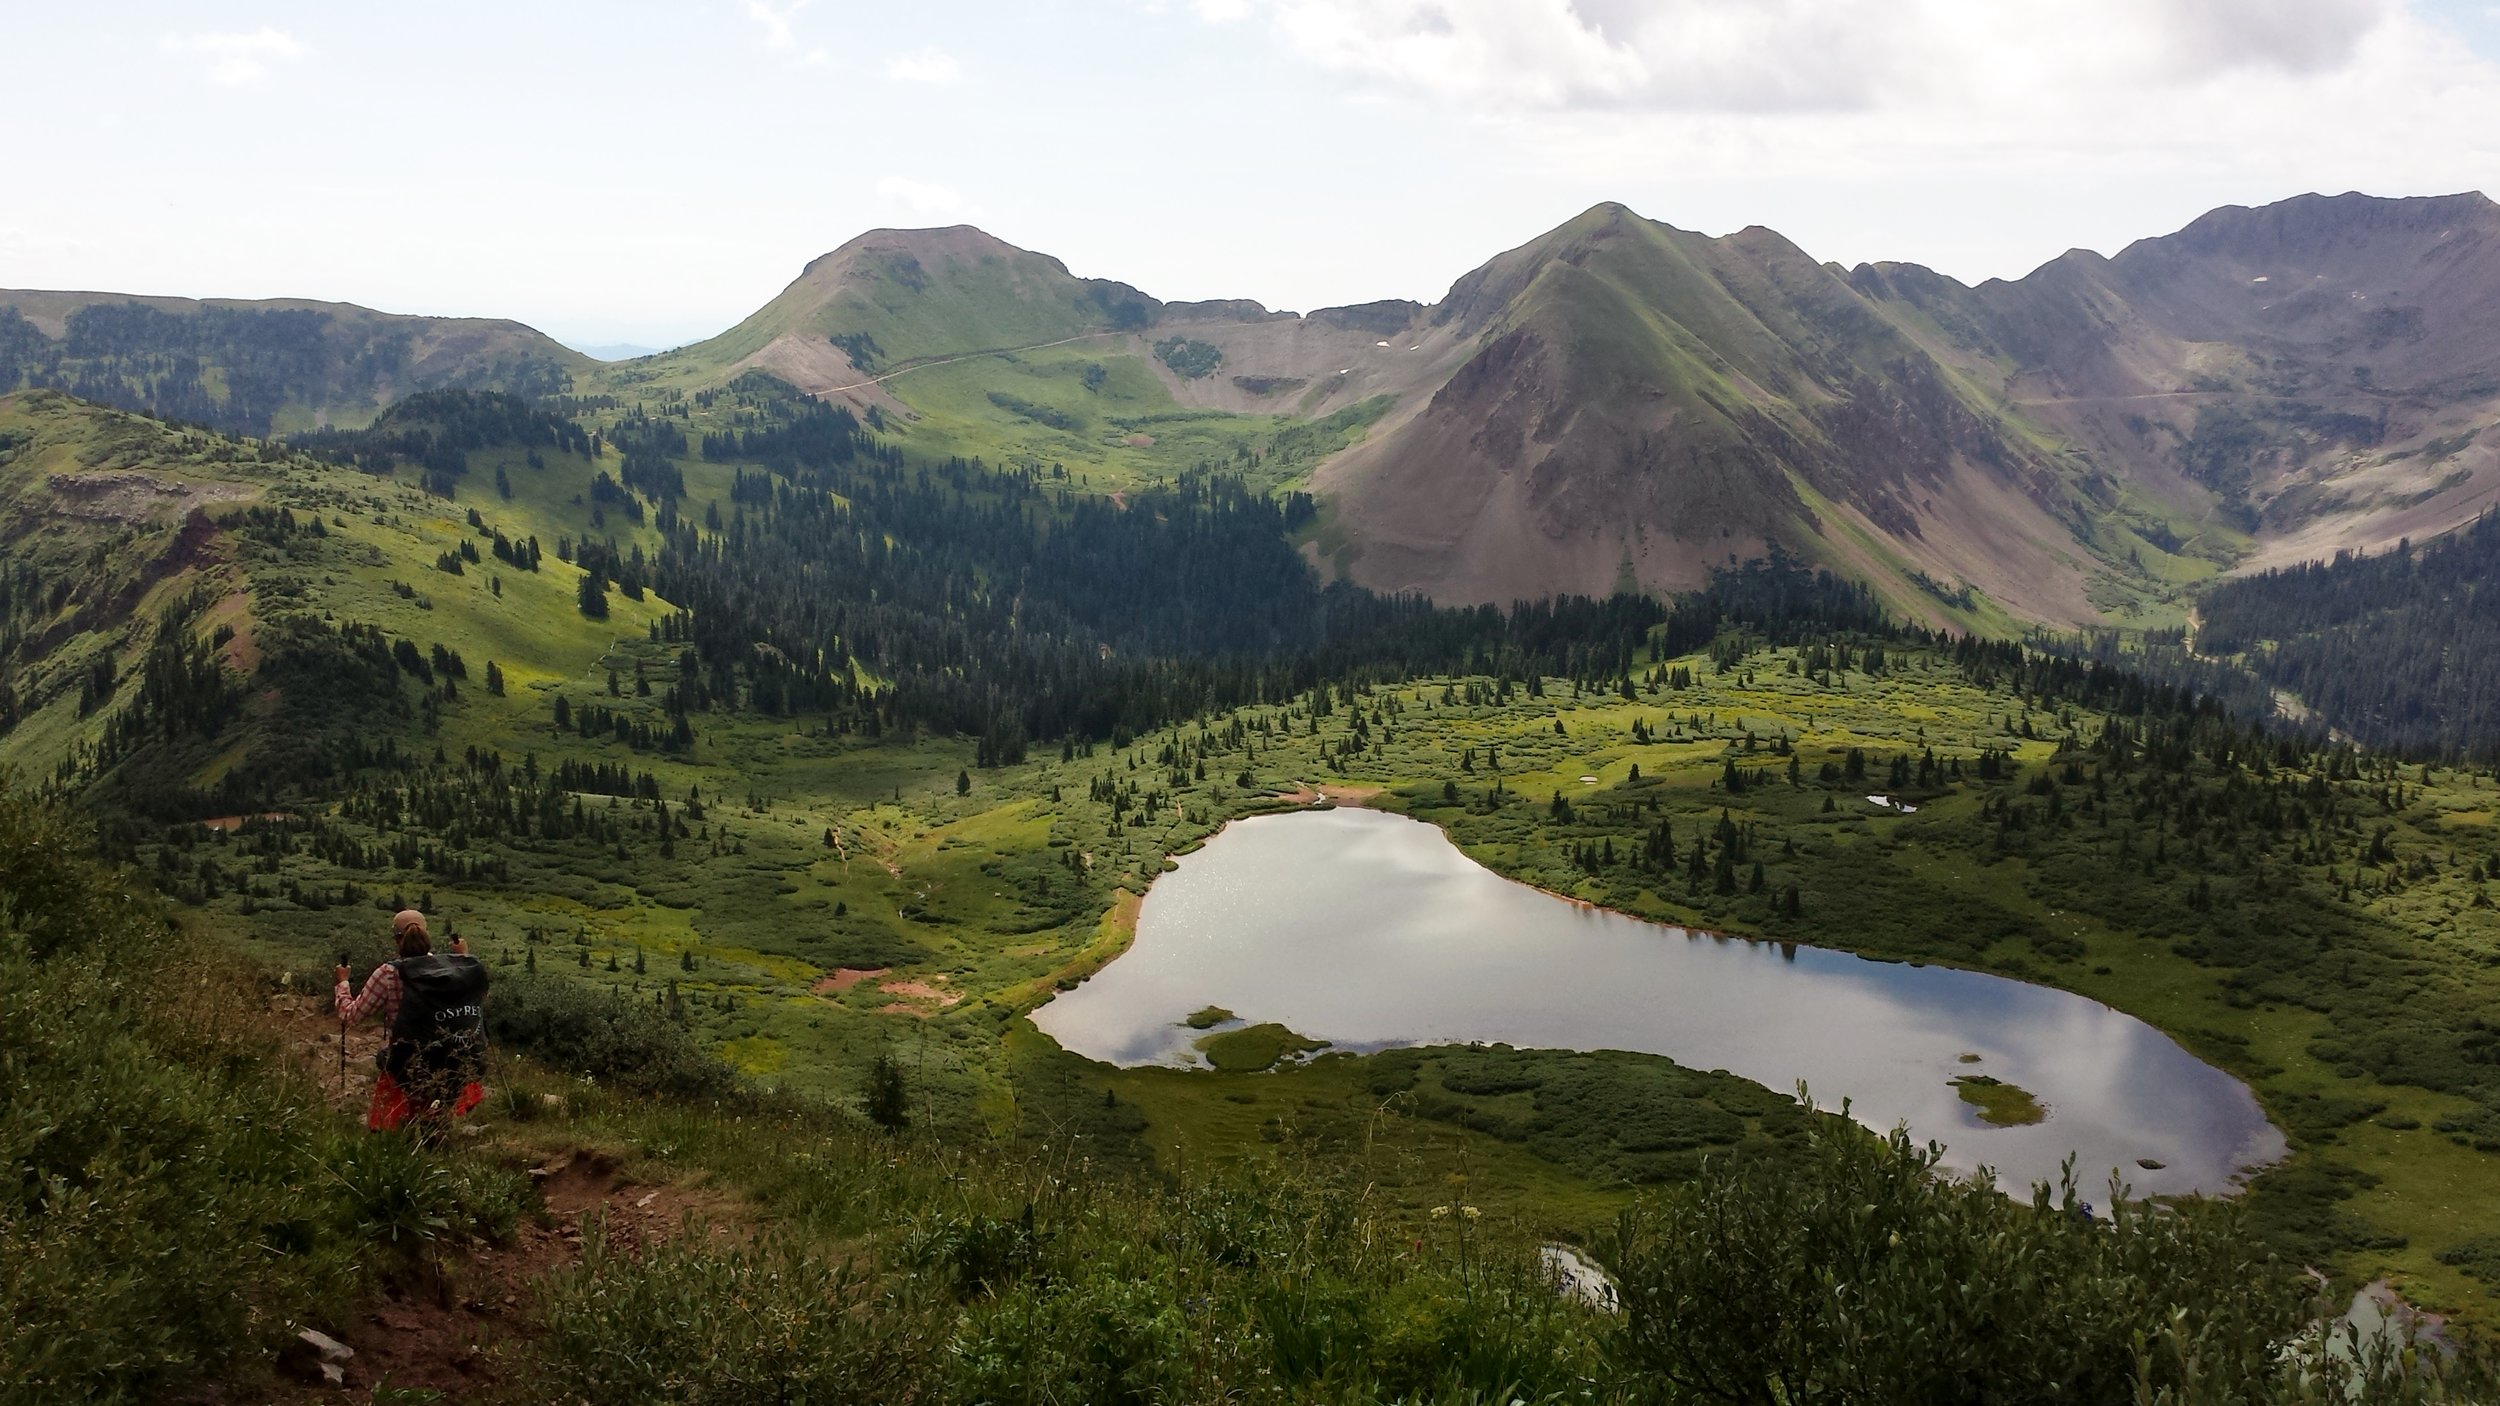 Day 35:  We hiked over the exposed Indian Trail Ridge down to Taylor Lake, ate wild raspberries, and shared stories around the campfire with a group of fellow thru-hikers. Only one day away from Durango.  Daily mileage: 16.7. Total miles: 485.6.